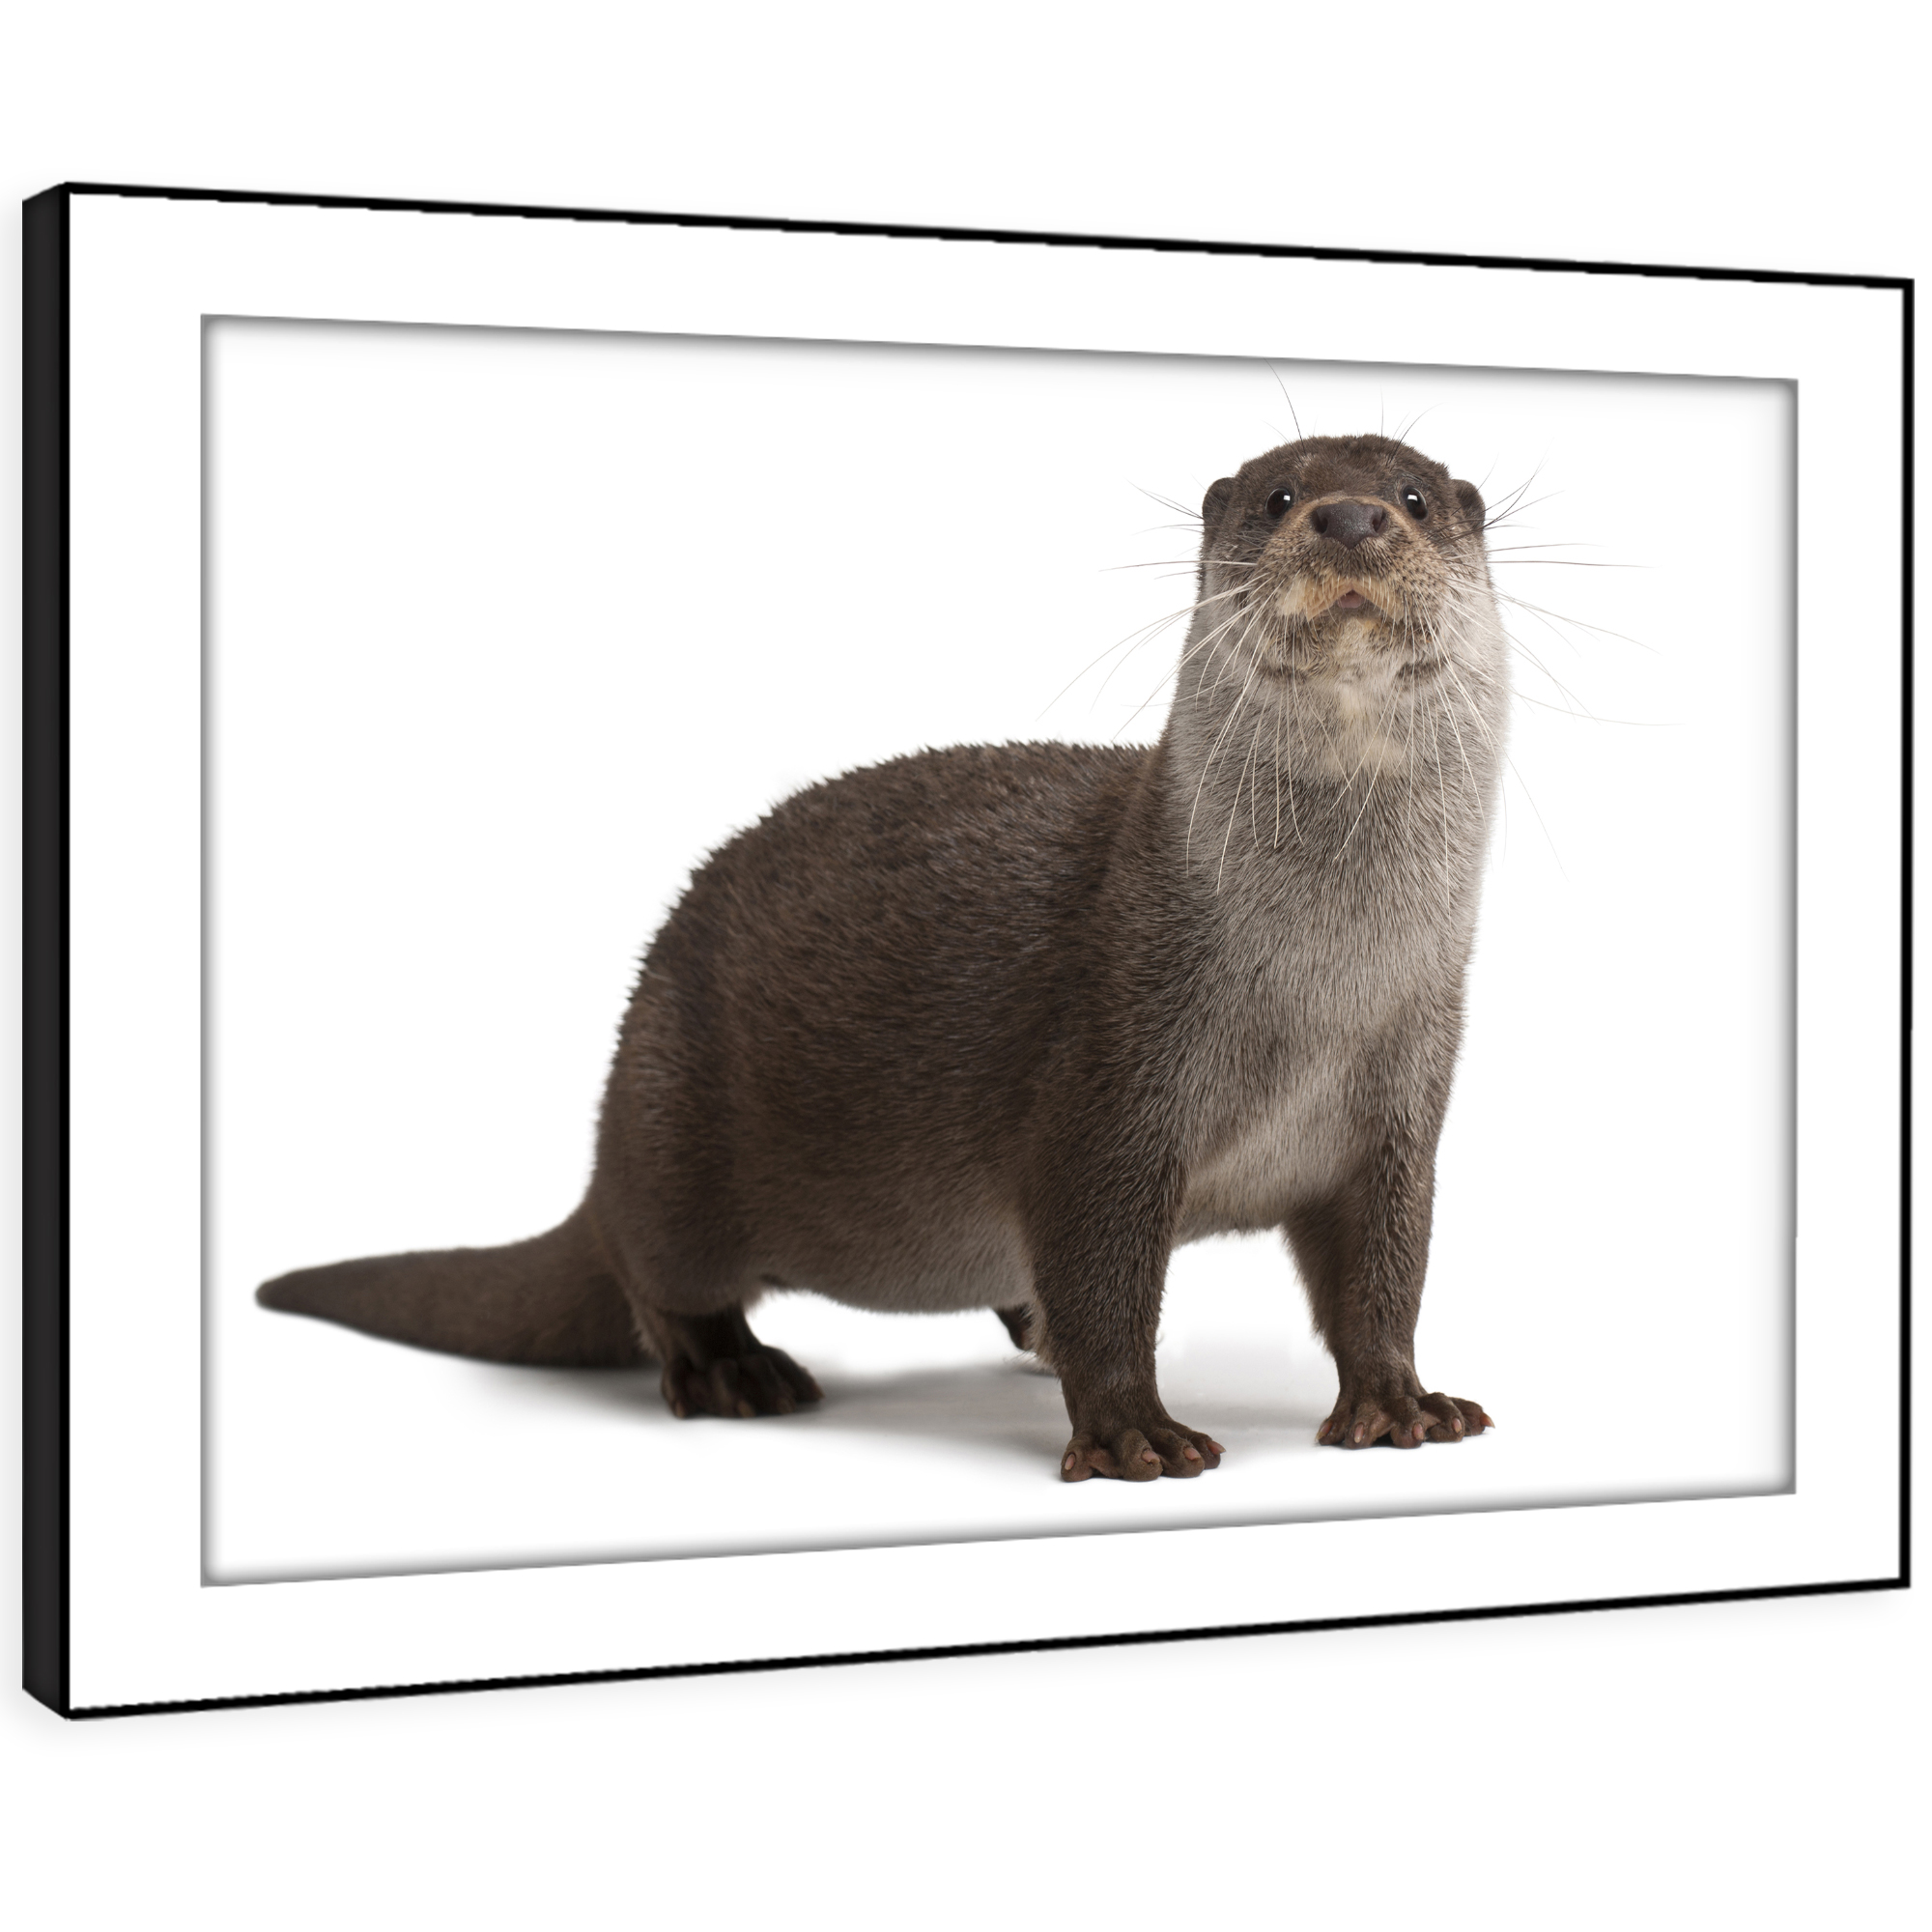 A355 Otter Cute grau Weiß Cool Funky Animal Framed Wall Art Large Picture Print